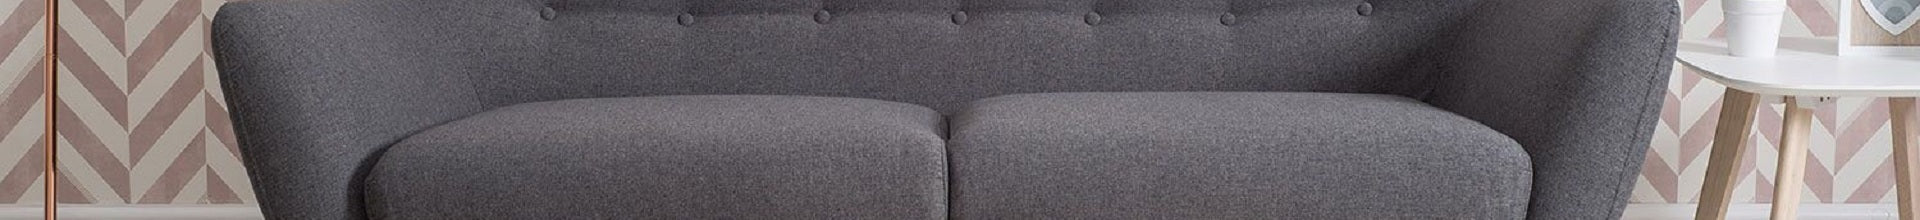 Fabric Sofas at Sofas Direct UK